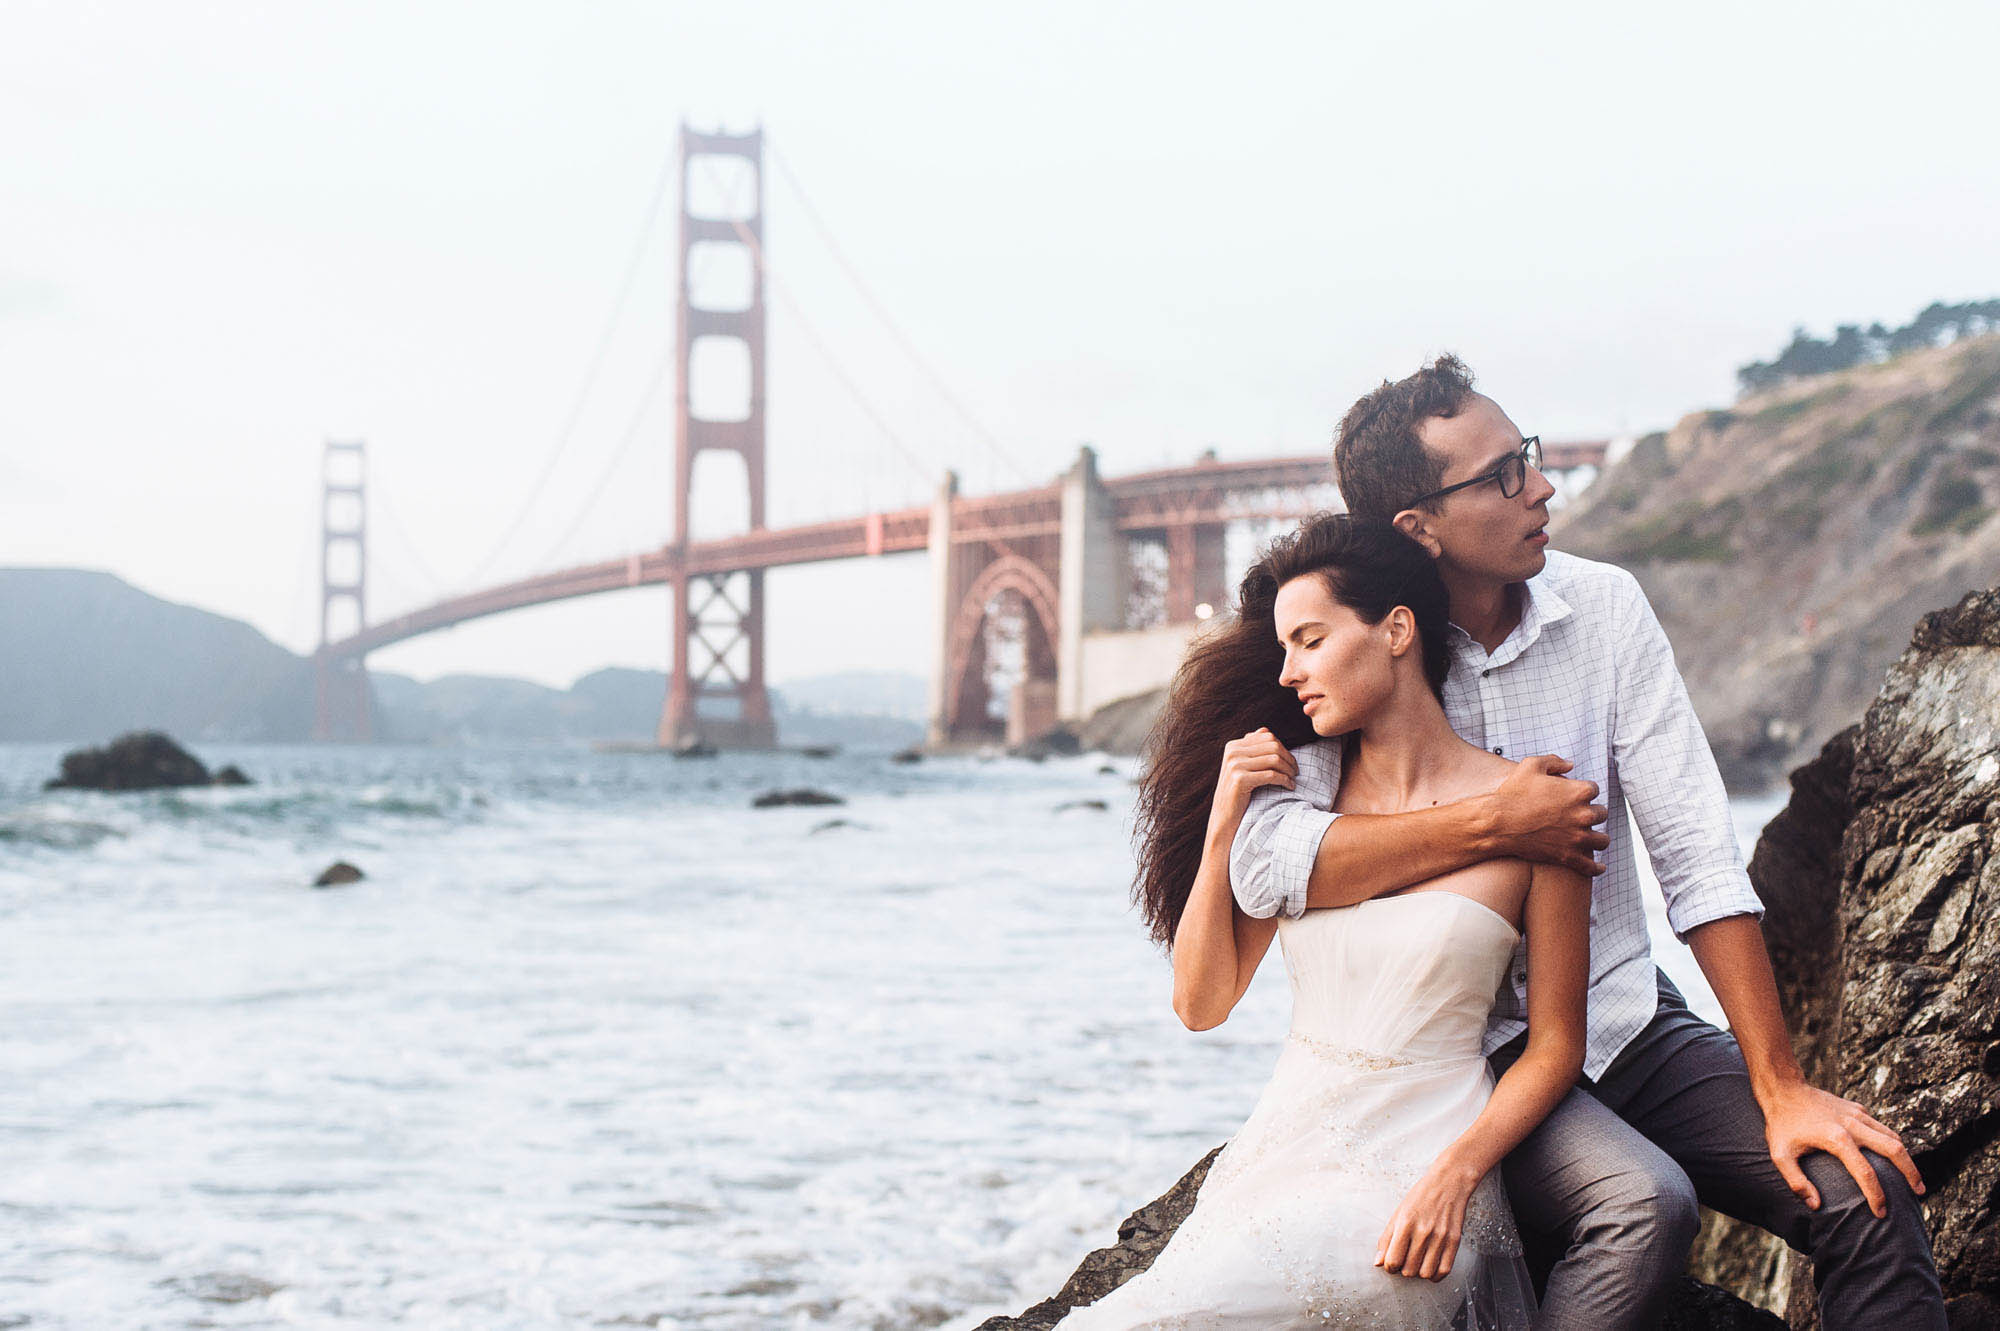 San Francisco Post-wedding Photo Shoot: Golden Gate bridge View - Alex & Anastasia